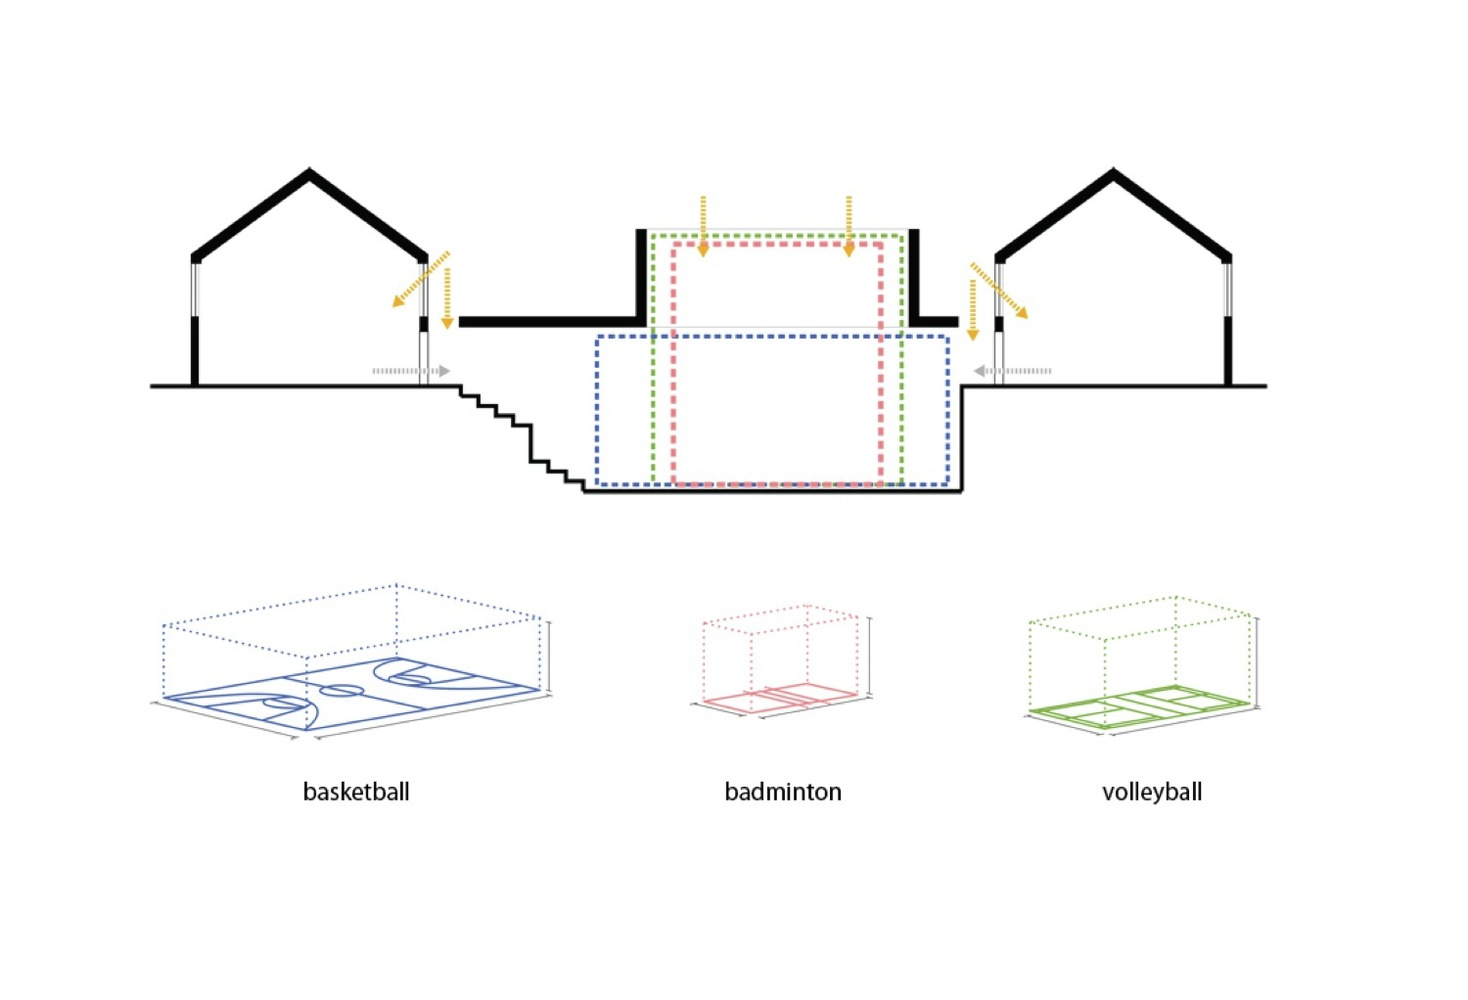 diagrams architecture light